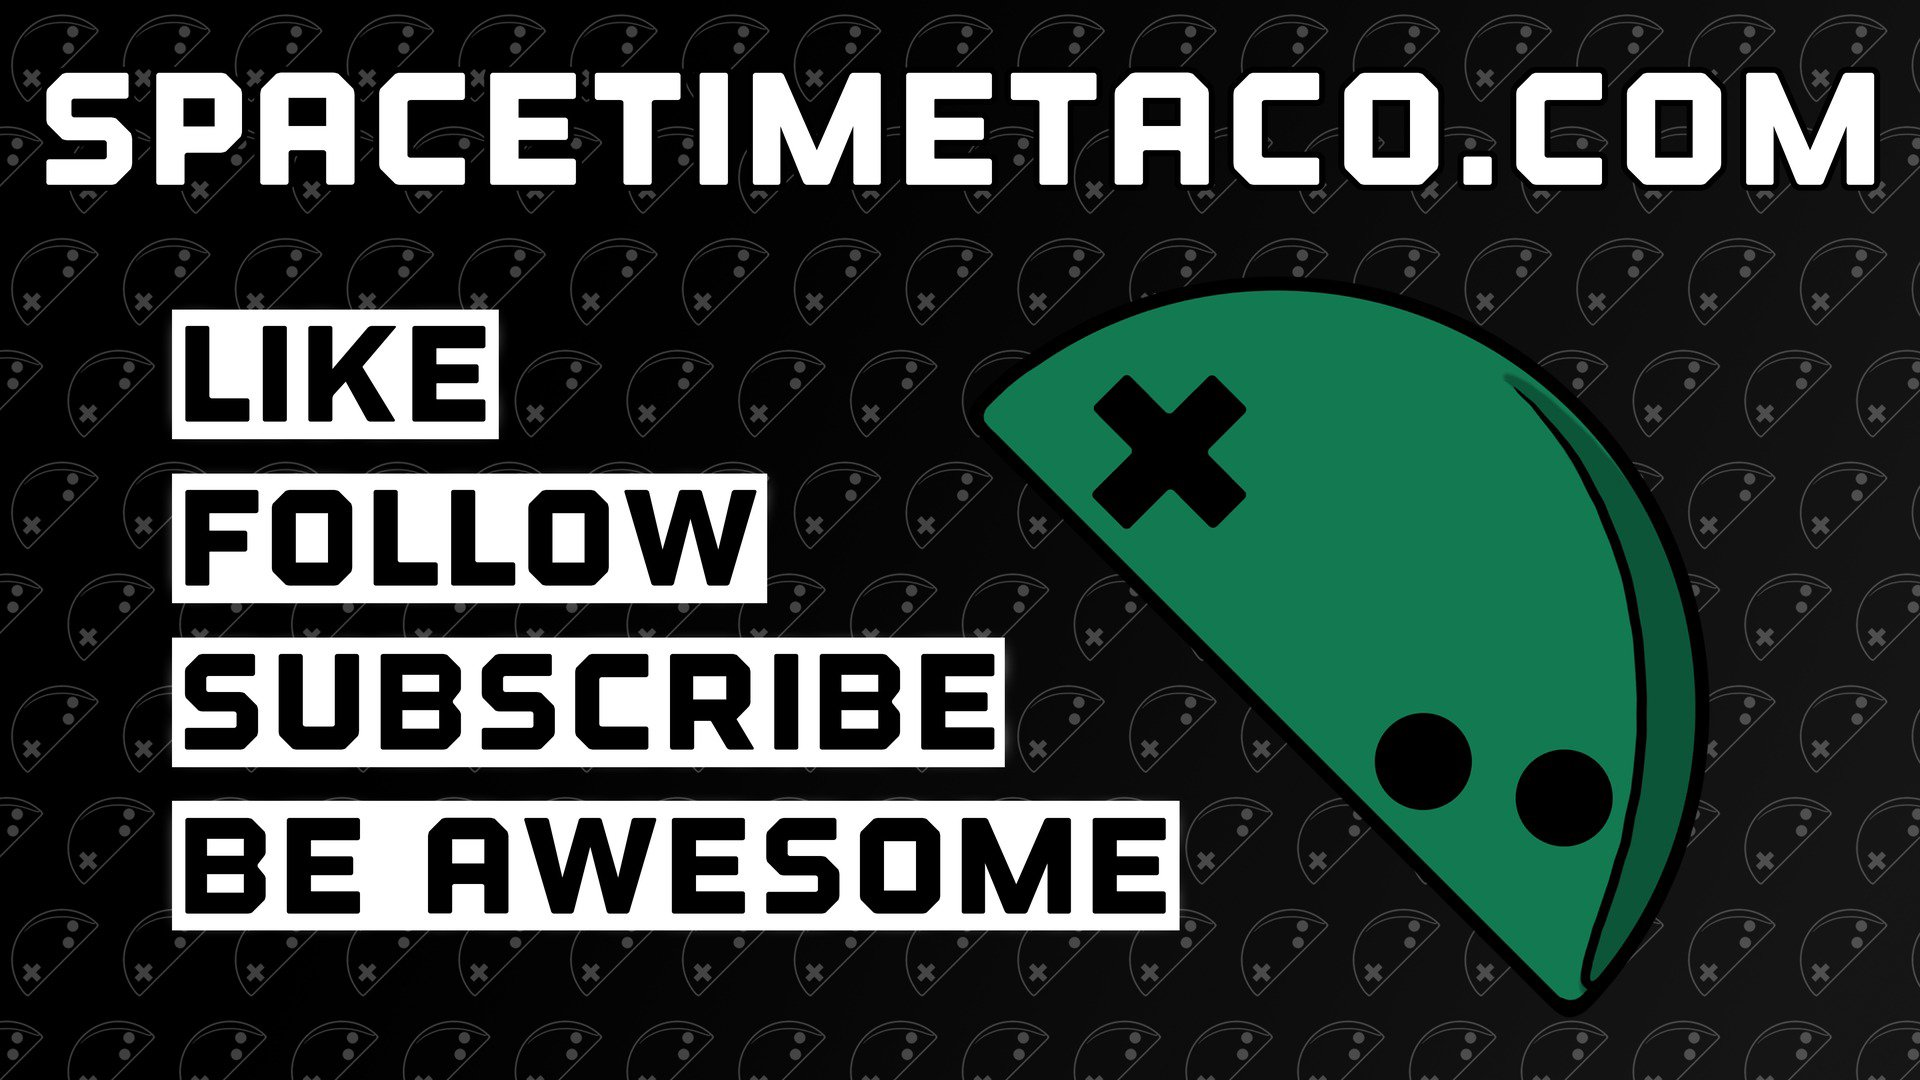 Twitch stream of SpaceTimeTaco